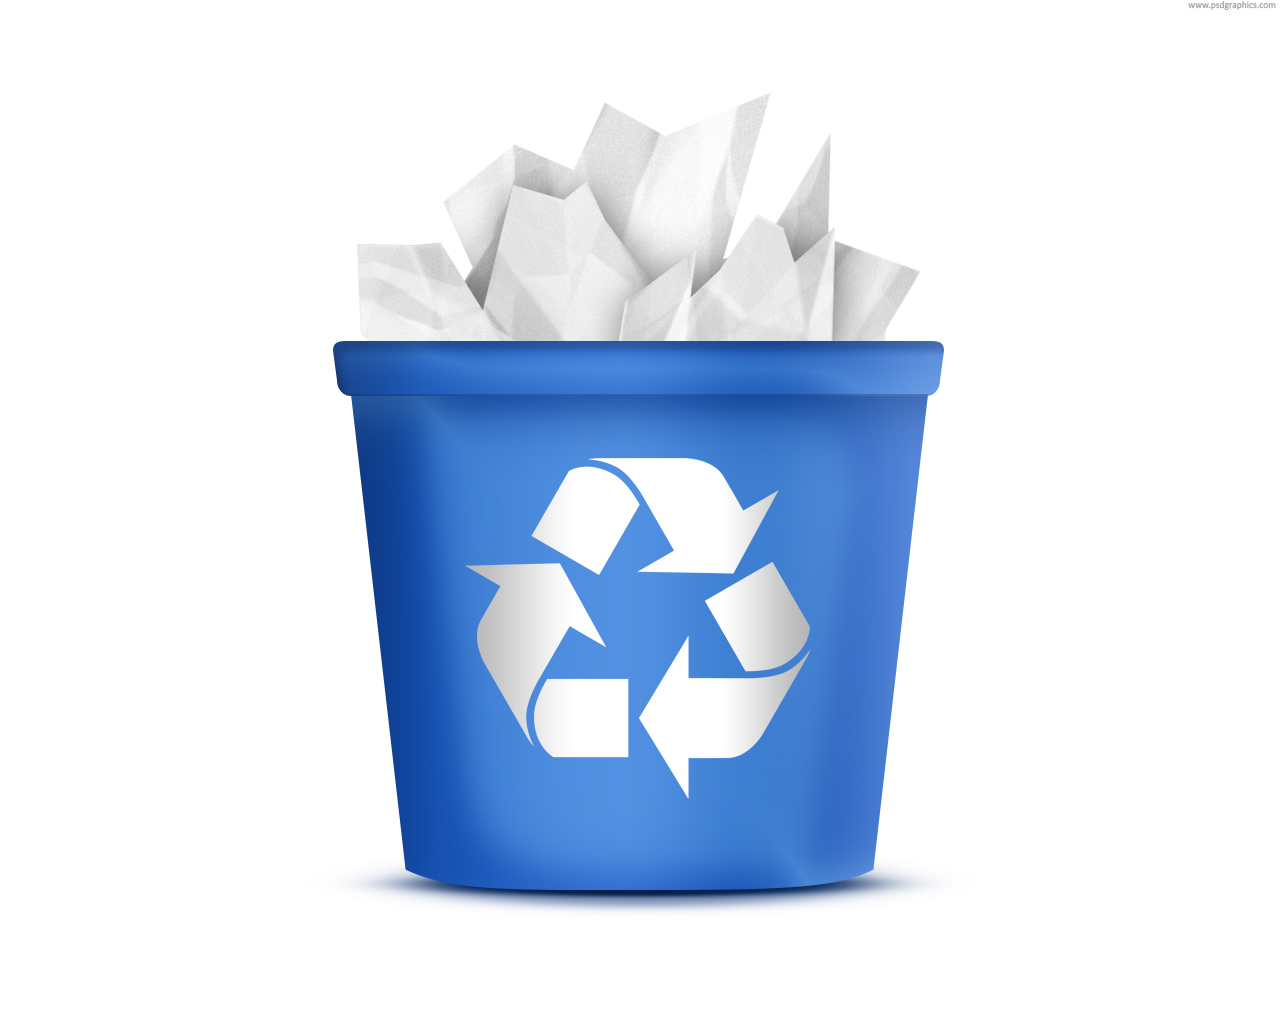 Icon Transparent Recycle Bin image #16258